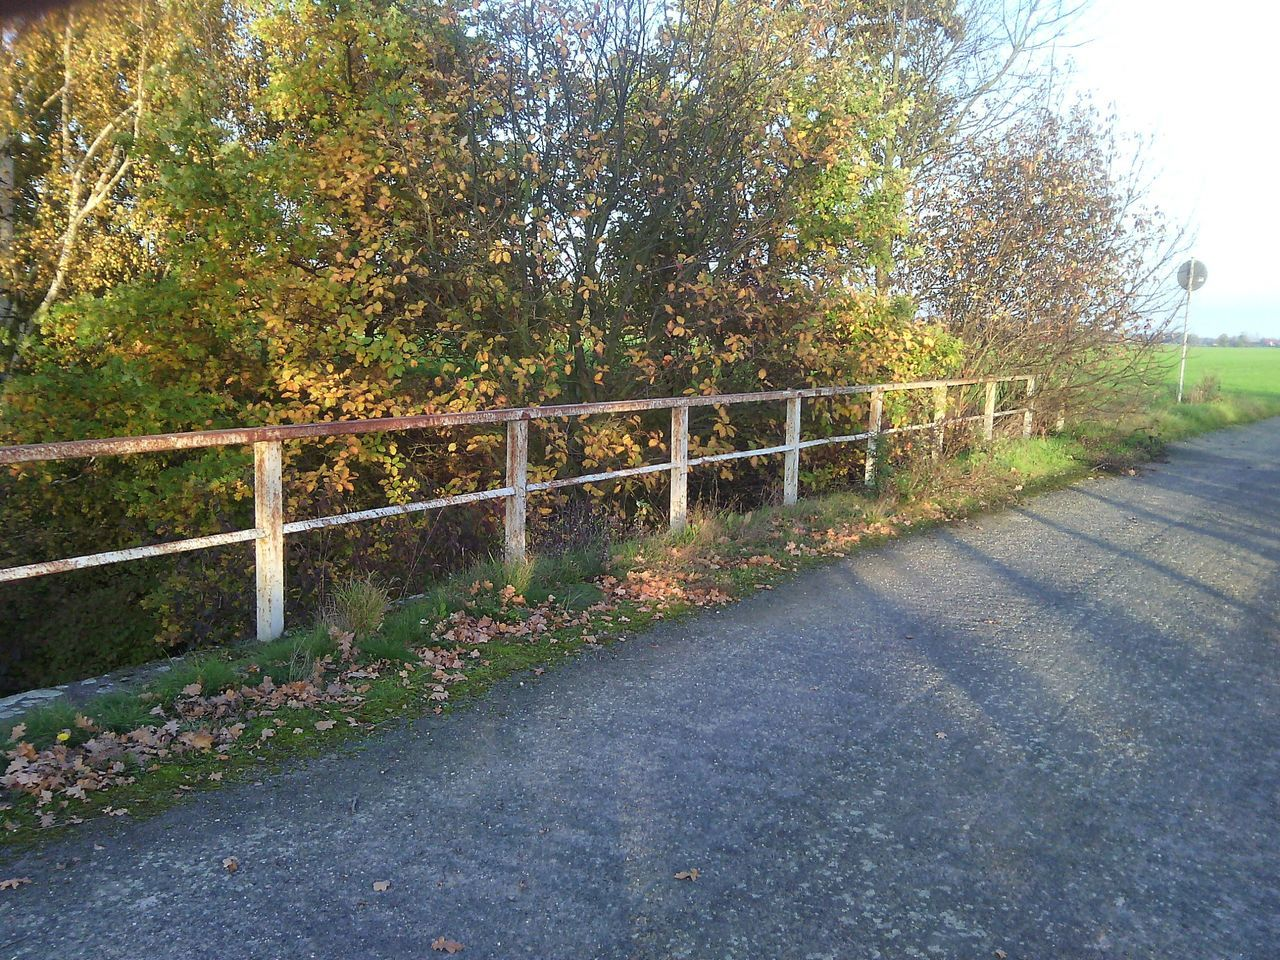 tree, railing, nature, outdoors, road, the way forward, day, no people, bridge - man made structure, scenics, beauty in nature, sky